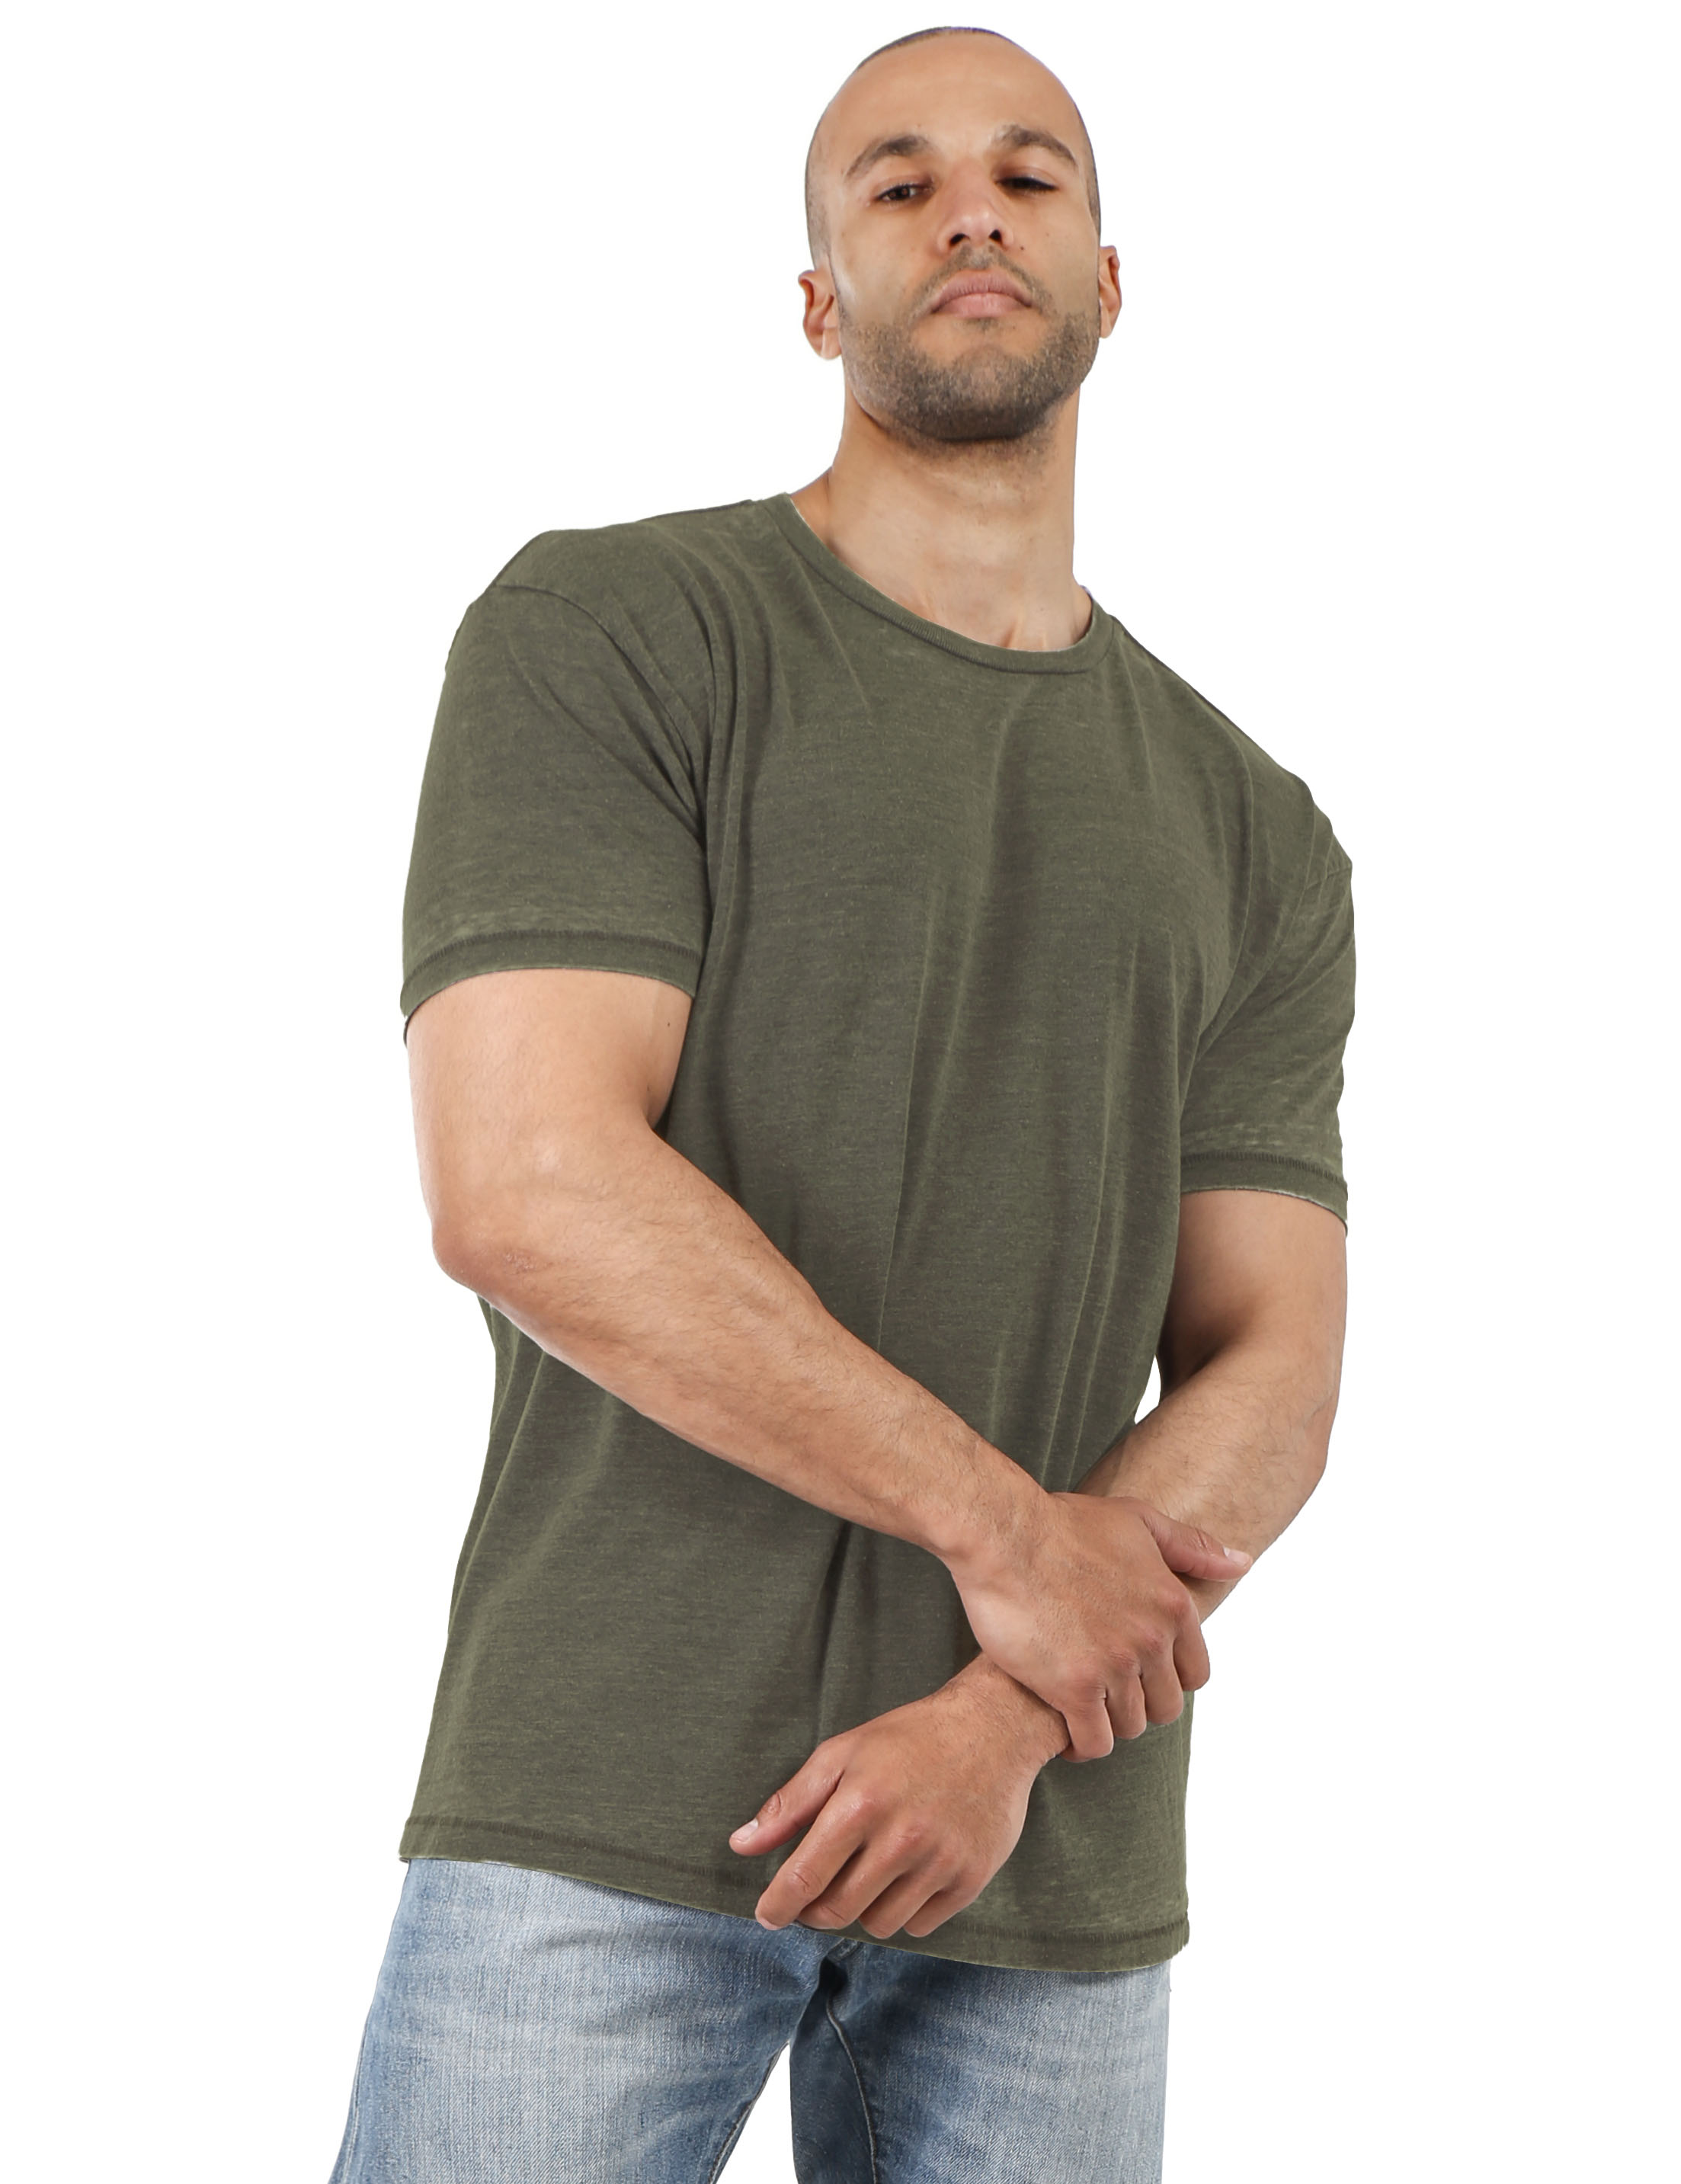 Mens-Vintage-T-Shirts-Washed-Burnout-Fade-Short-Sleeve-Basic-Crew-Neck-Tee thumbnail 13